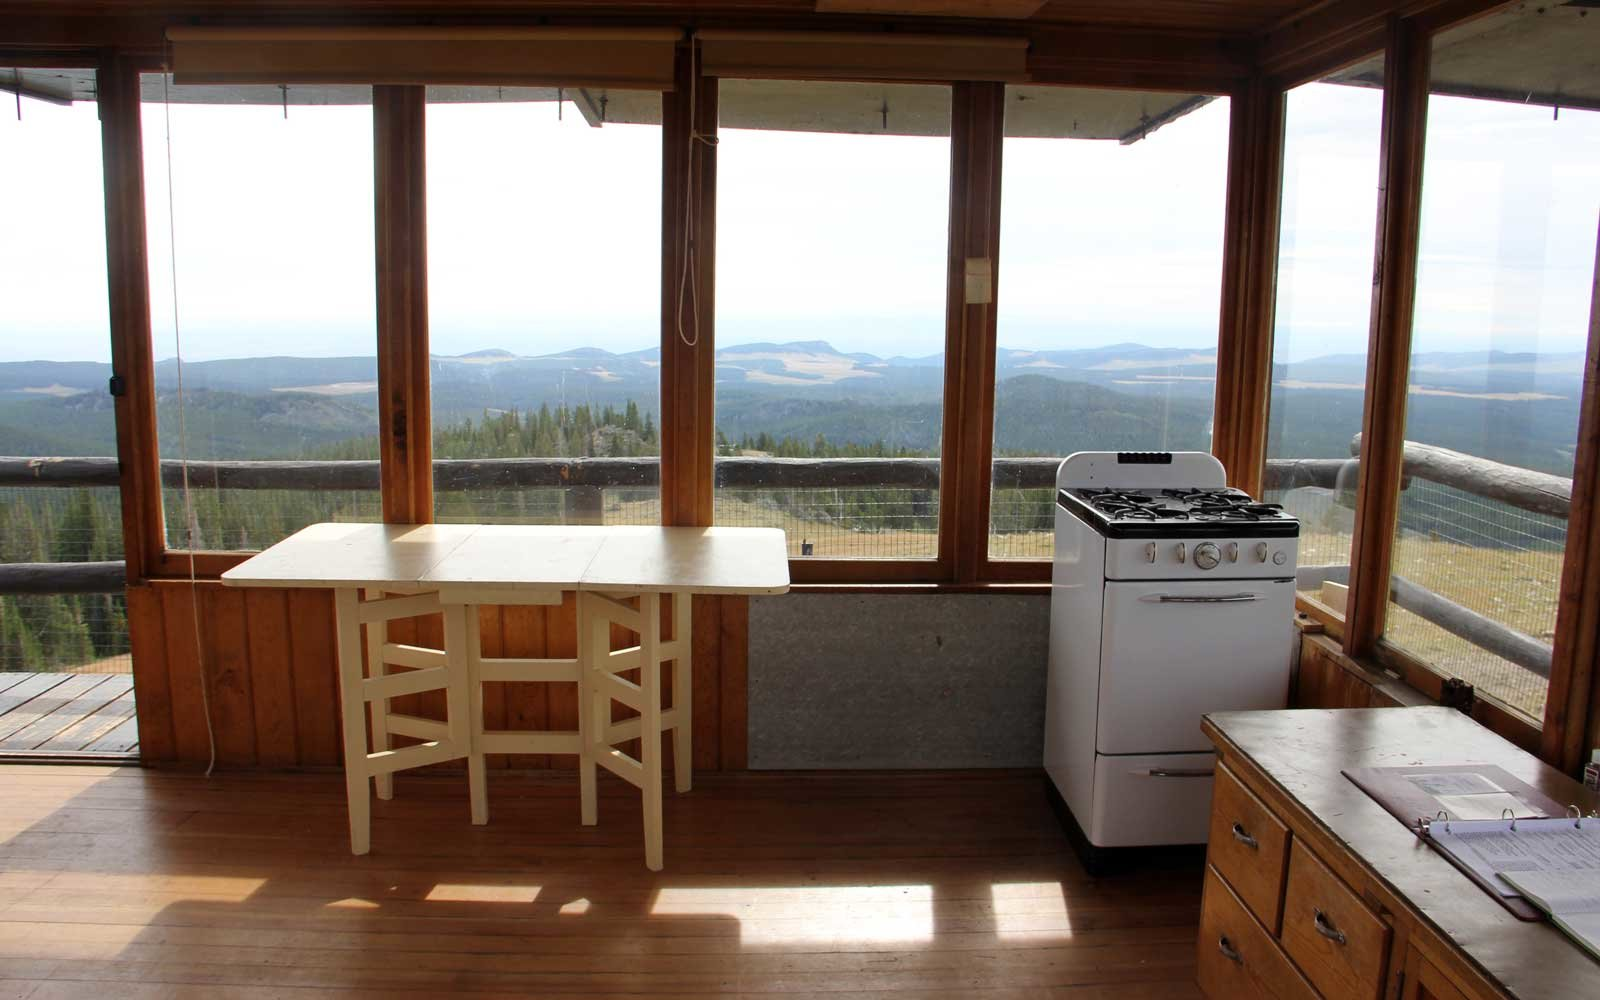 Sleep in a Fire Tower in Wyoming